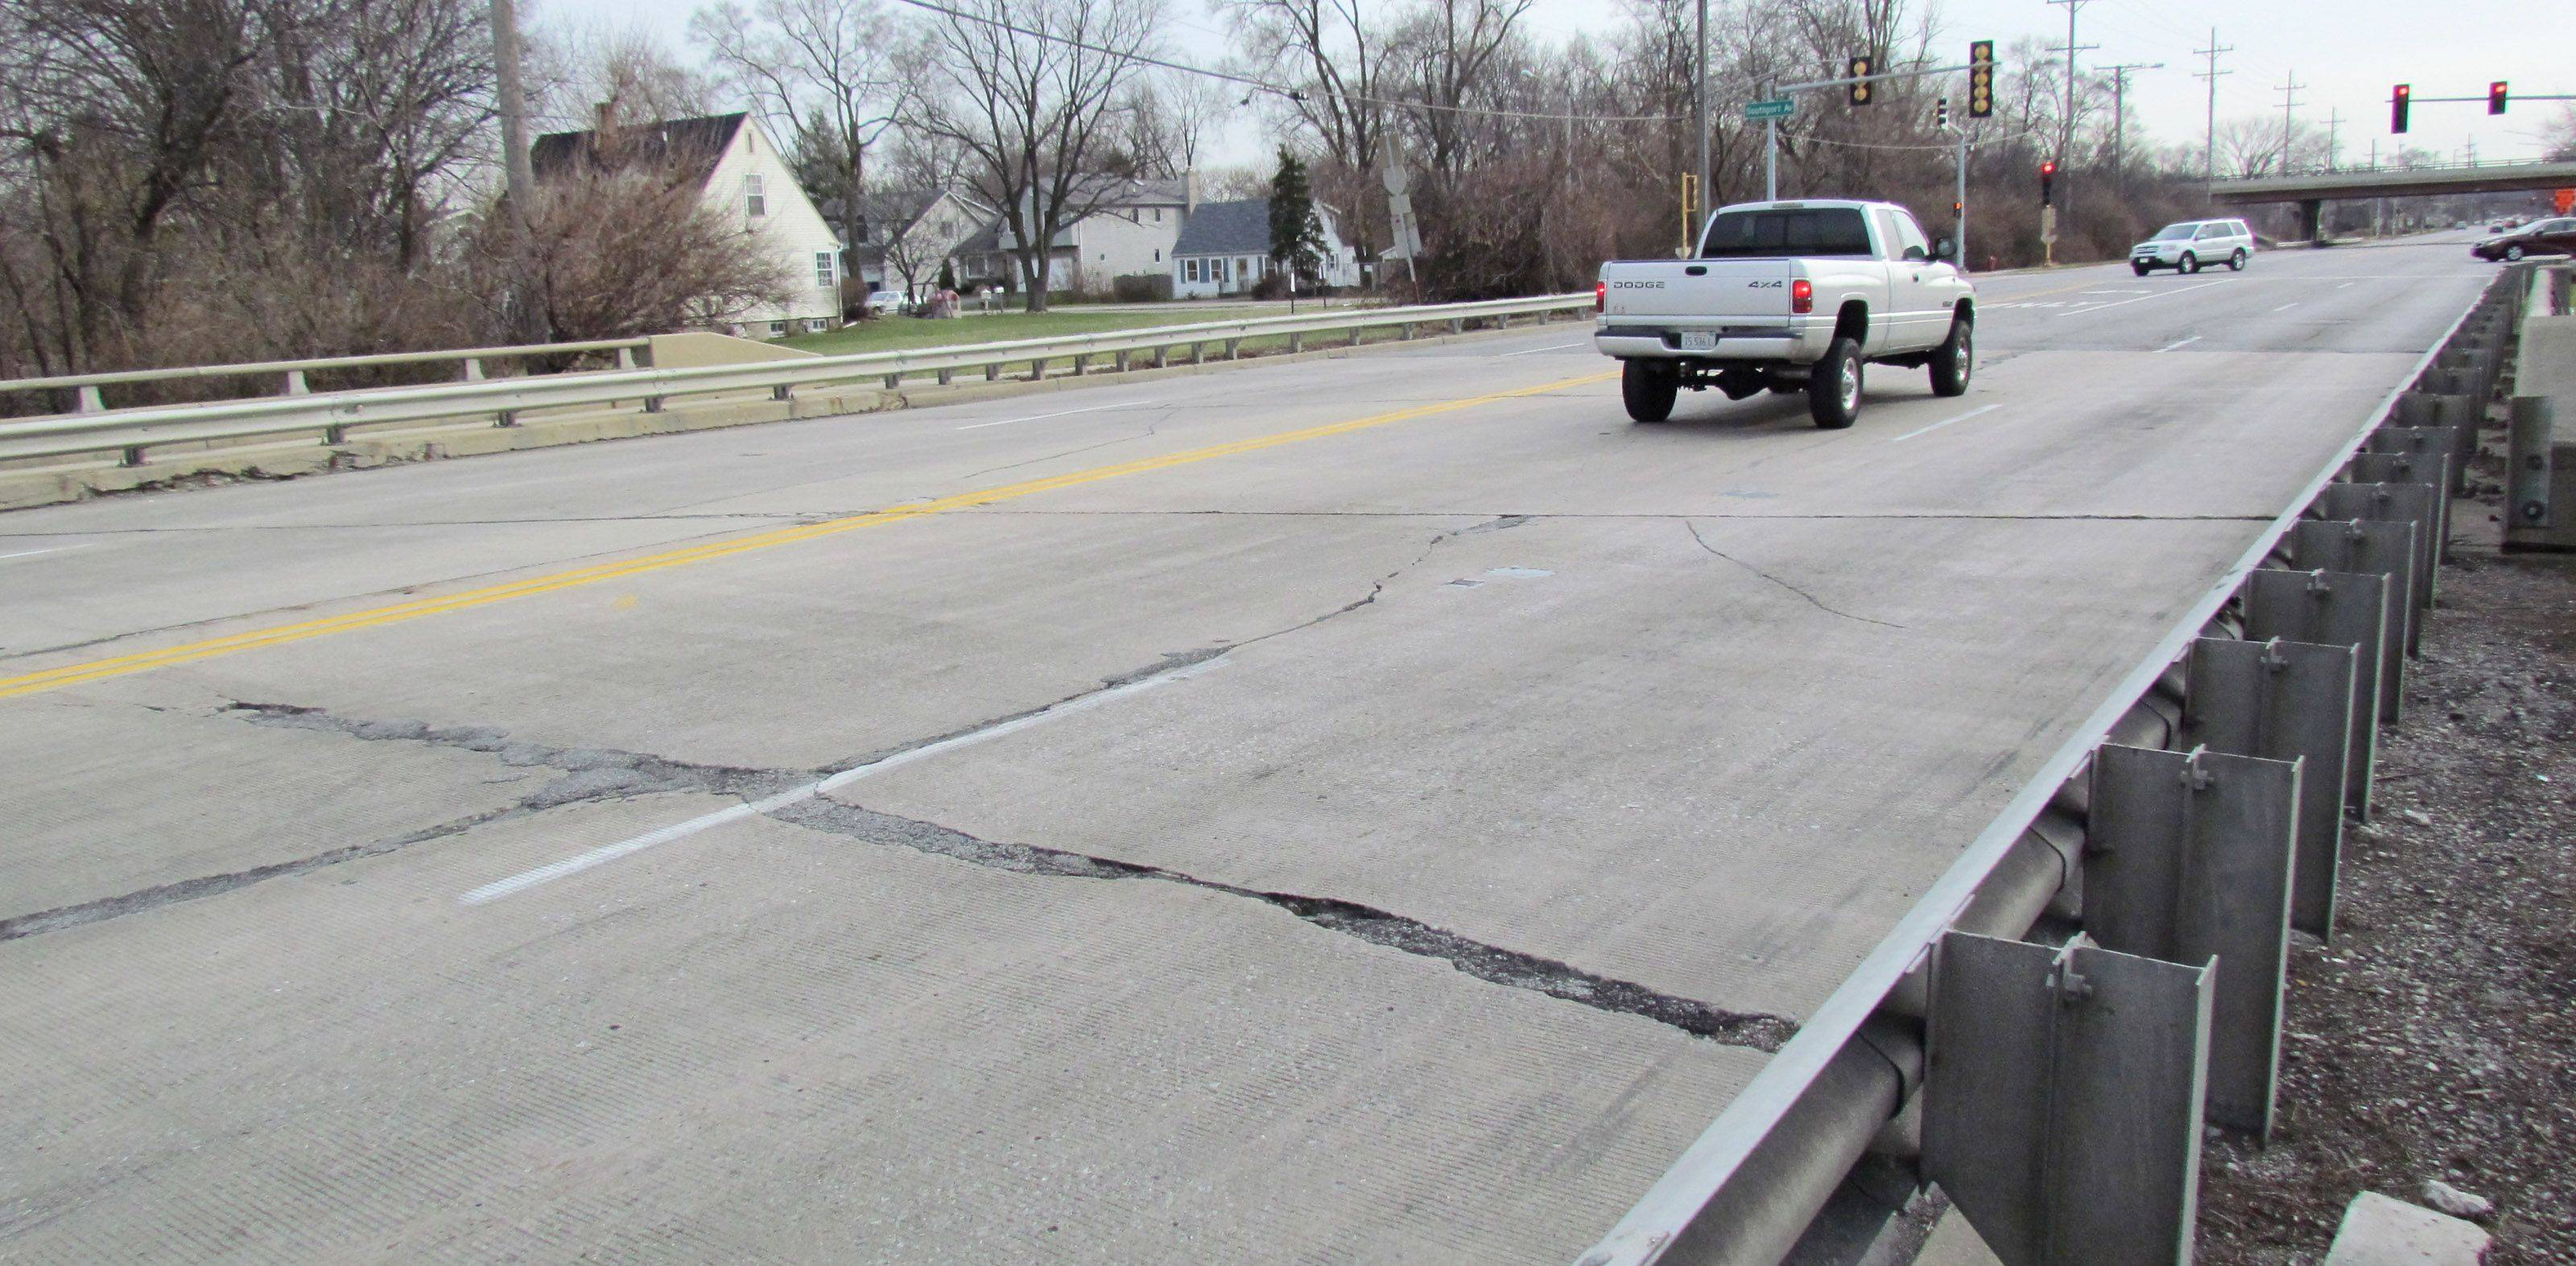 The Route 53 bridge over St. Joseph Creek in Lisle is one of 293 rated structurally deficient in the six-county Chicago and suburban region. Inspections have shown the bridge is in serious condition.